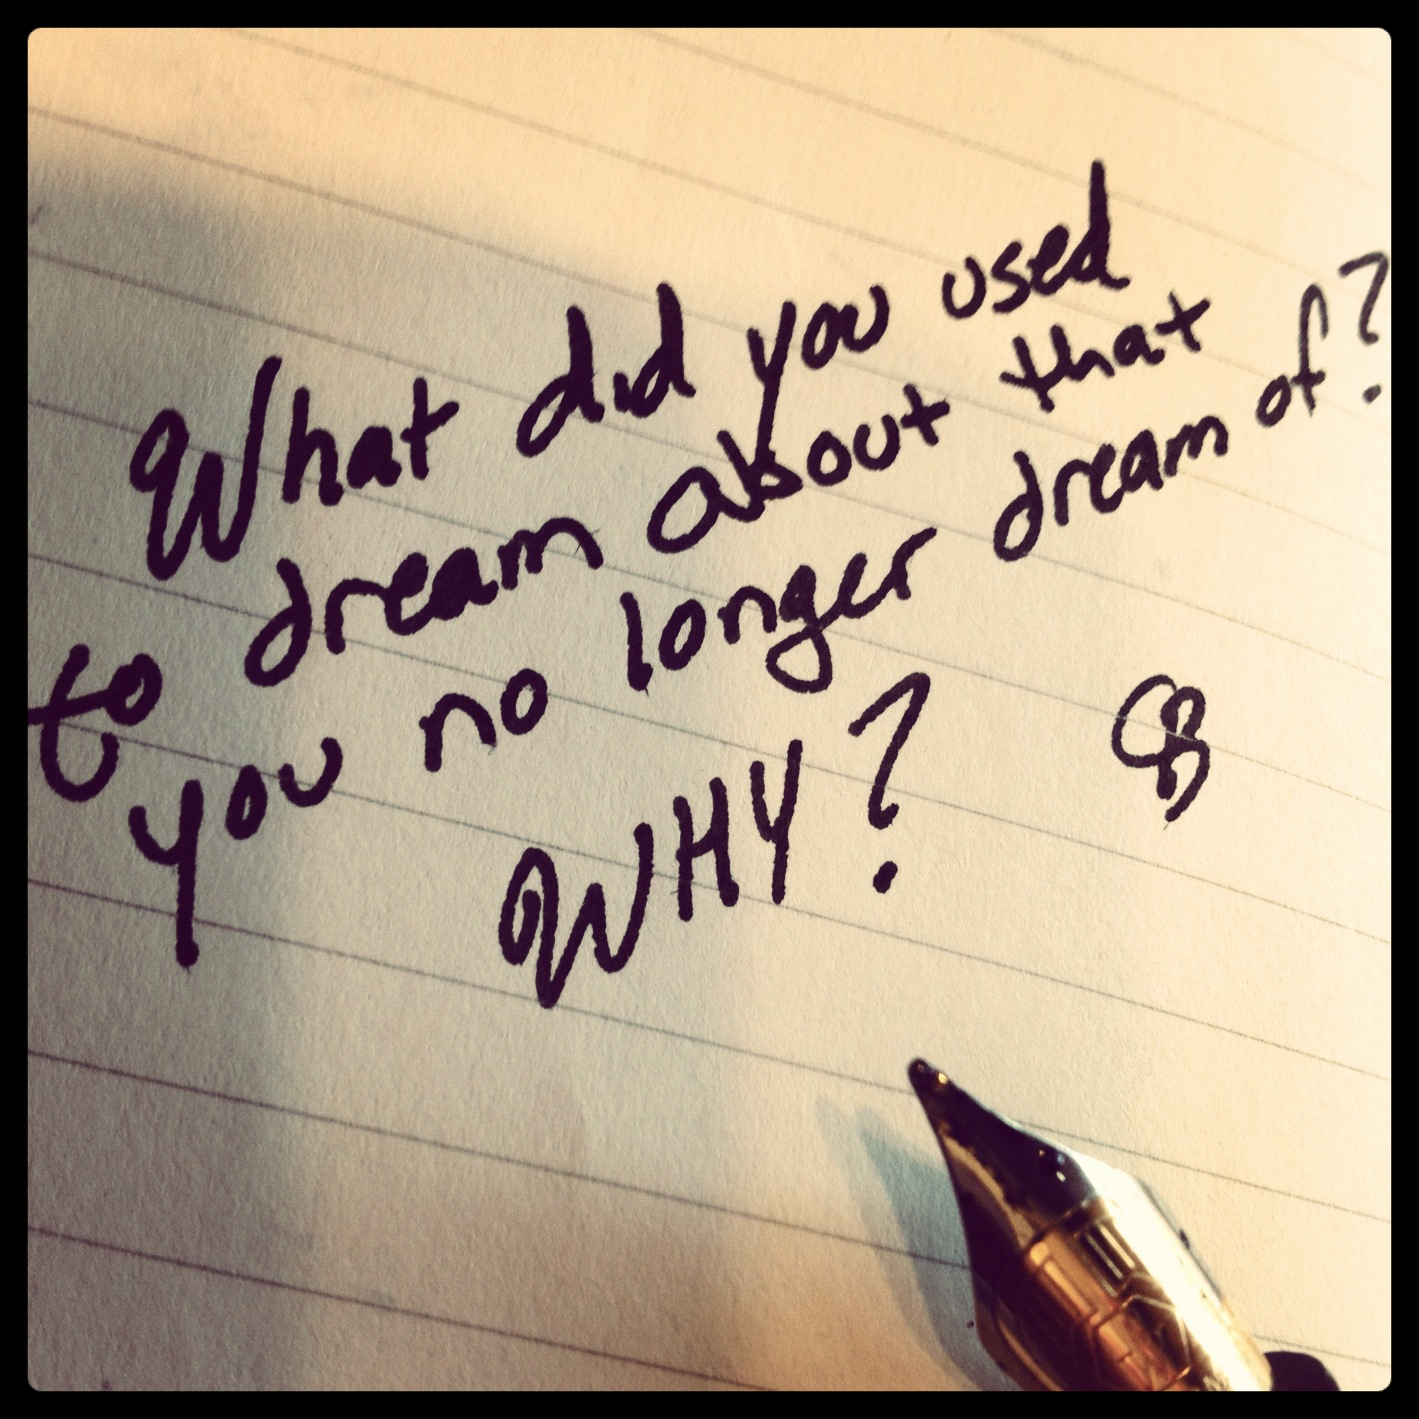 How have your dreams changed?